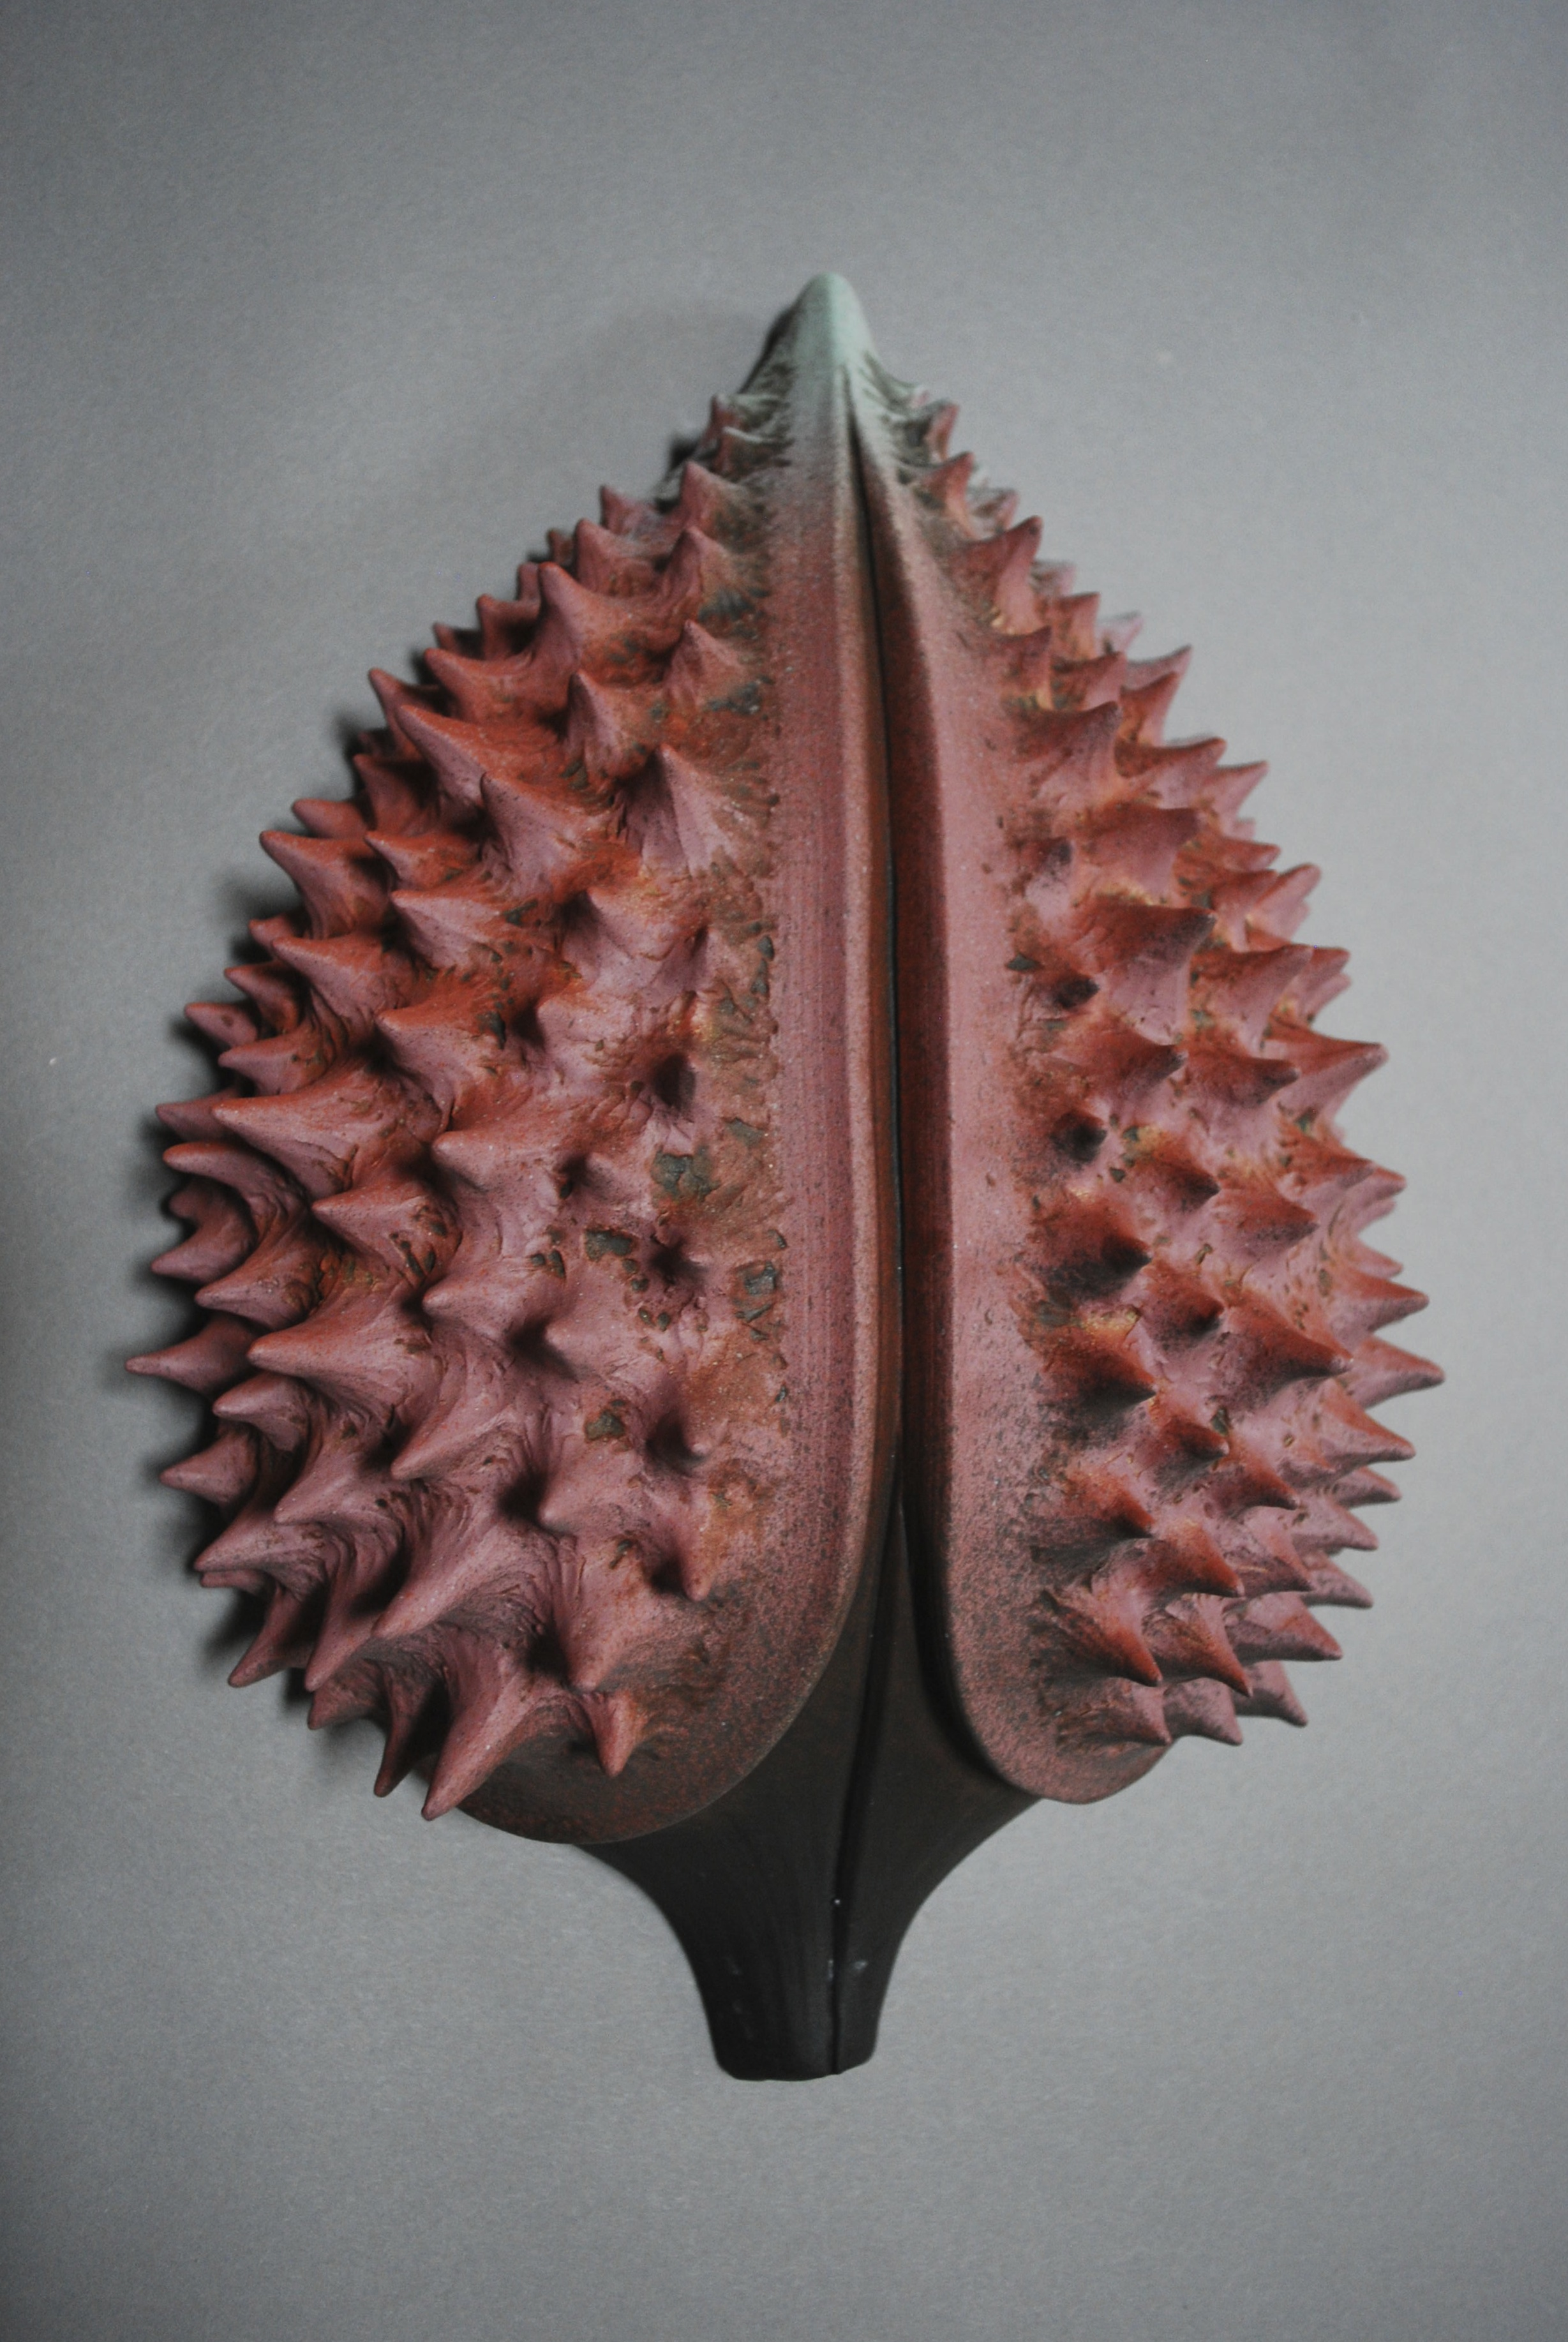 Inspired prickly pods